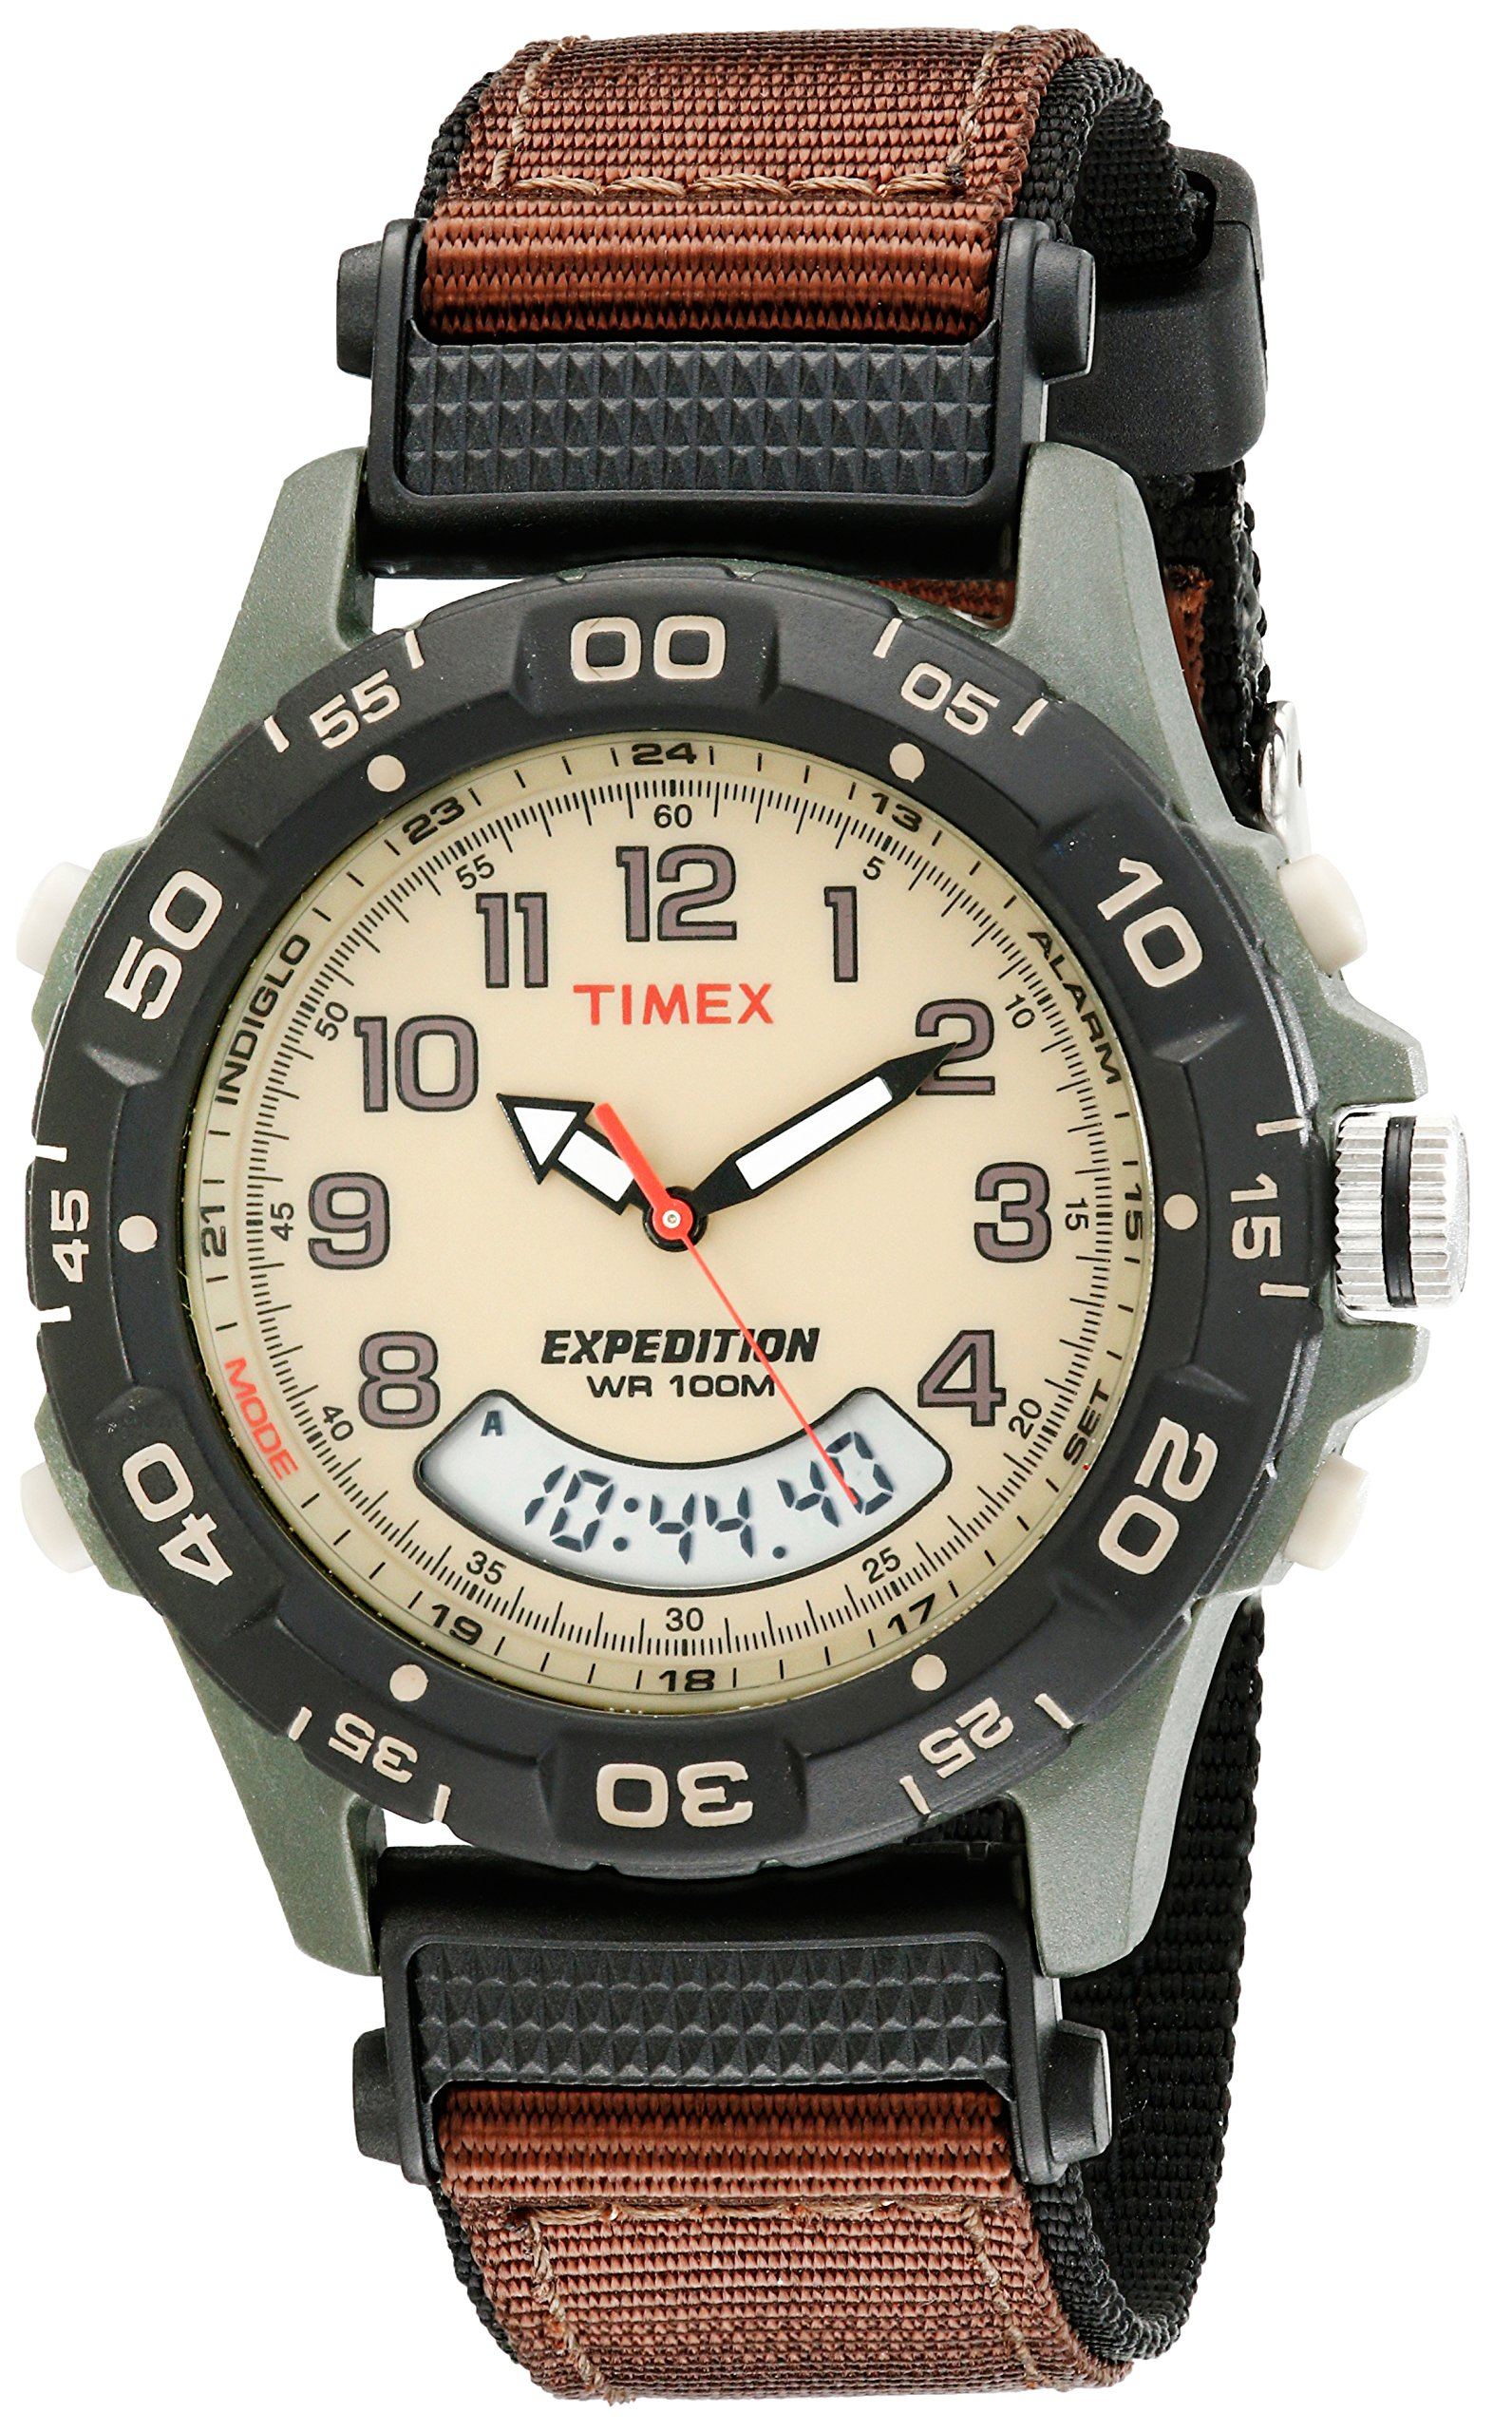 Timex Men's Expedition Combo Watch, Brown Nylon Strap by Timex